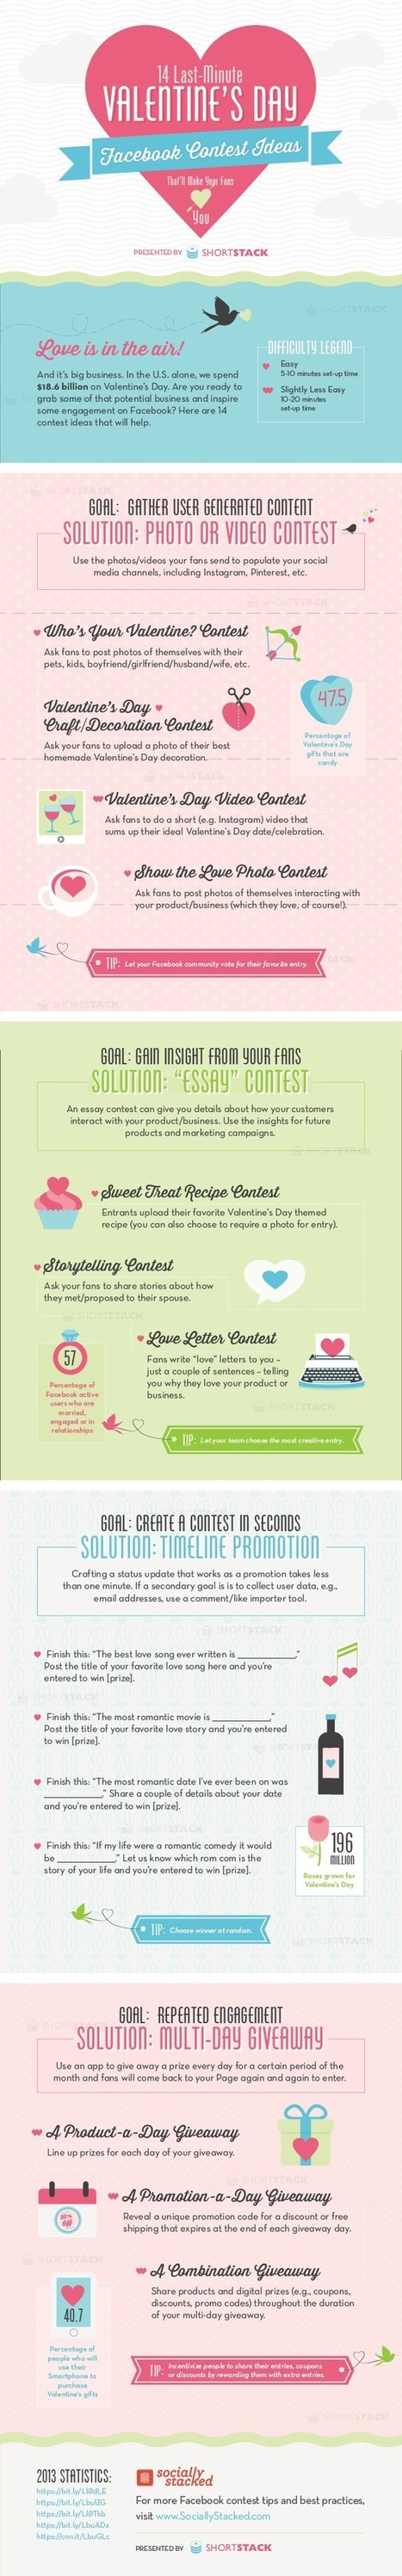 14 Awesome Valentine's Day Facebook Marketing Ideas | Social Media & Marketing | Scoop.it